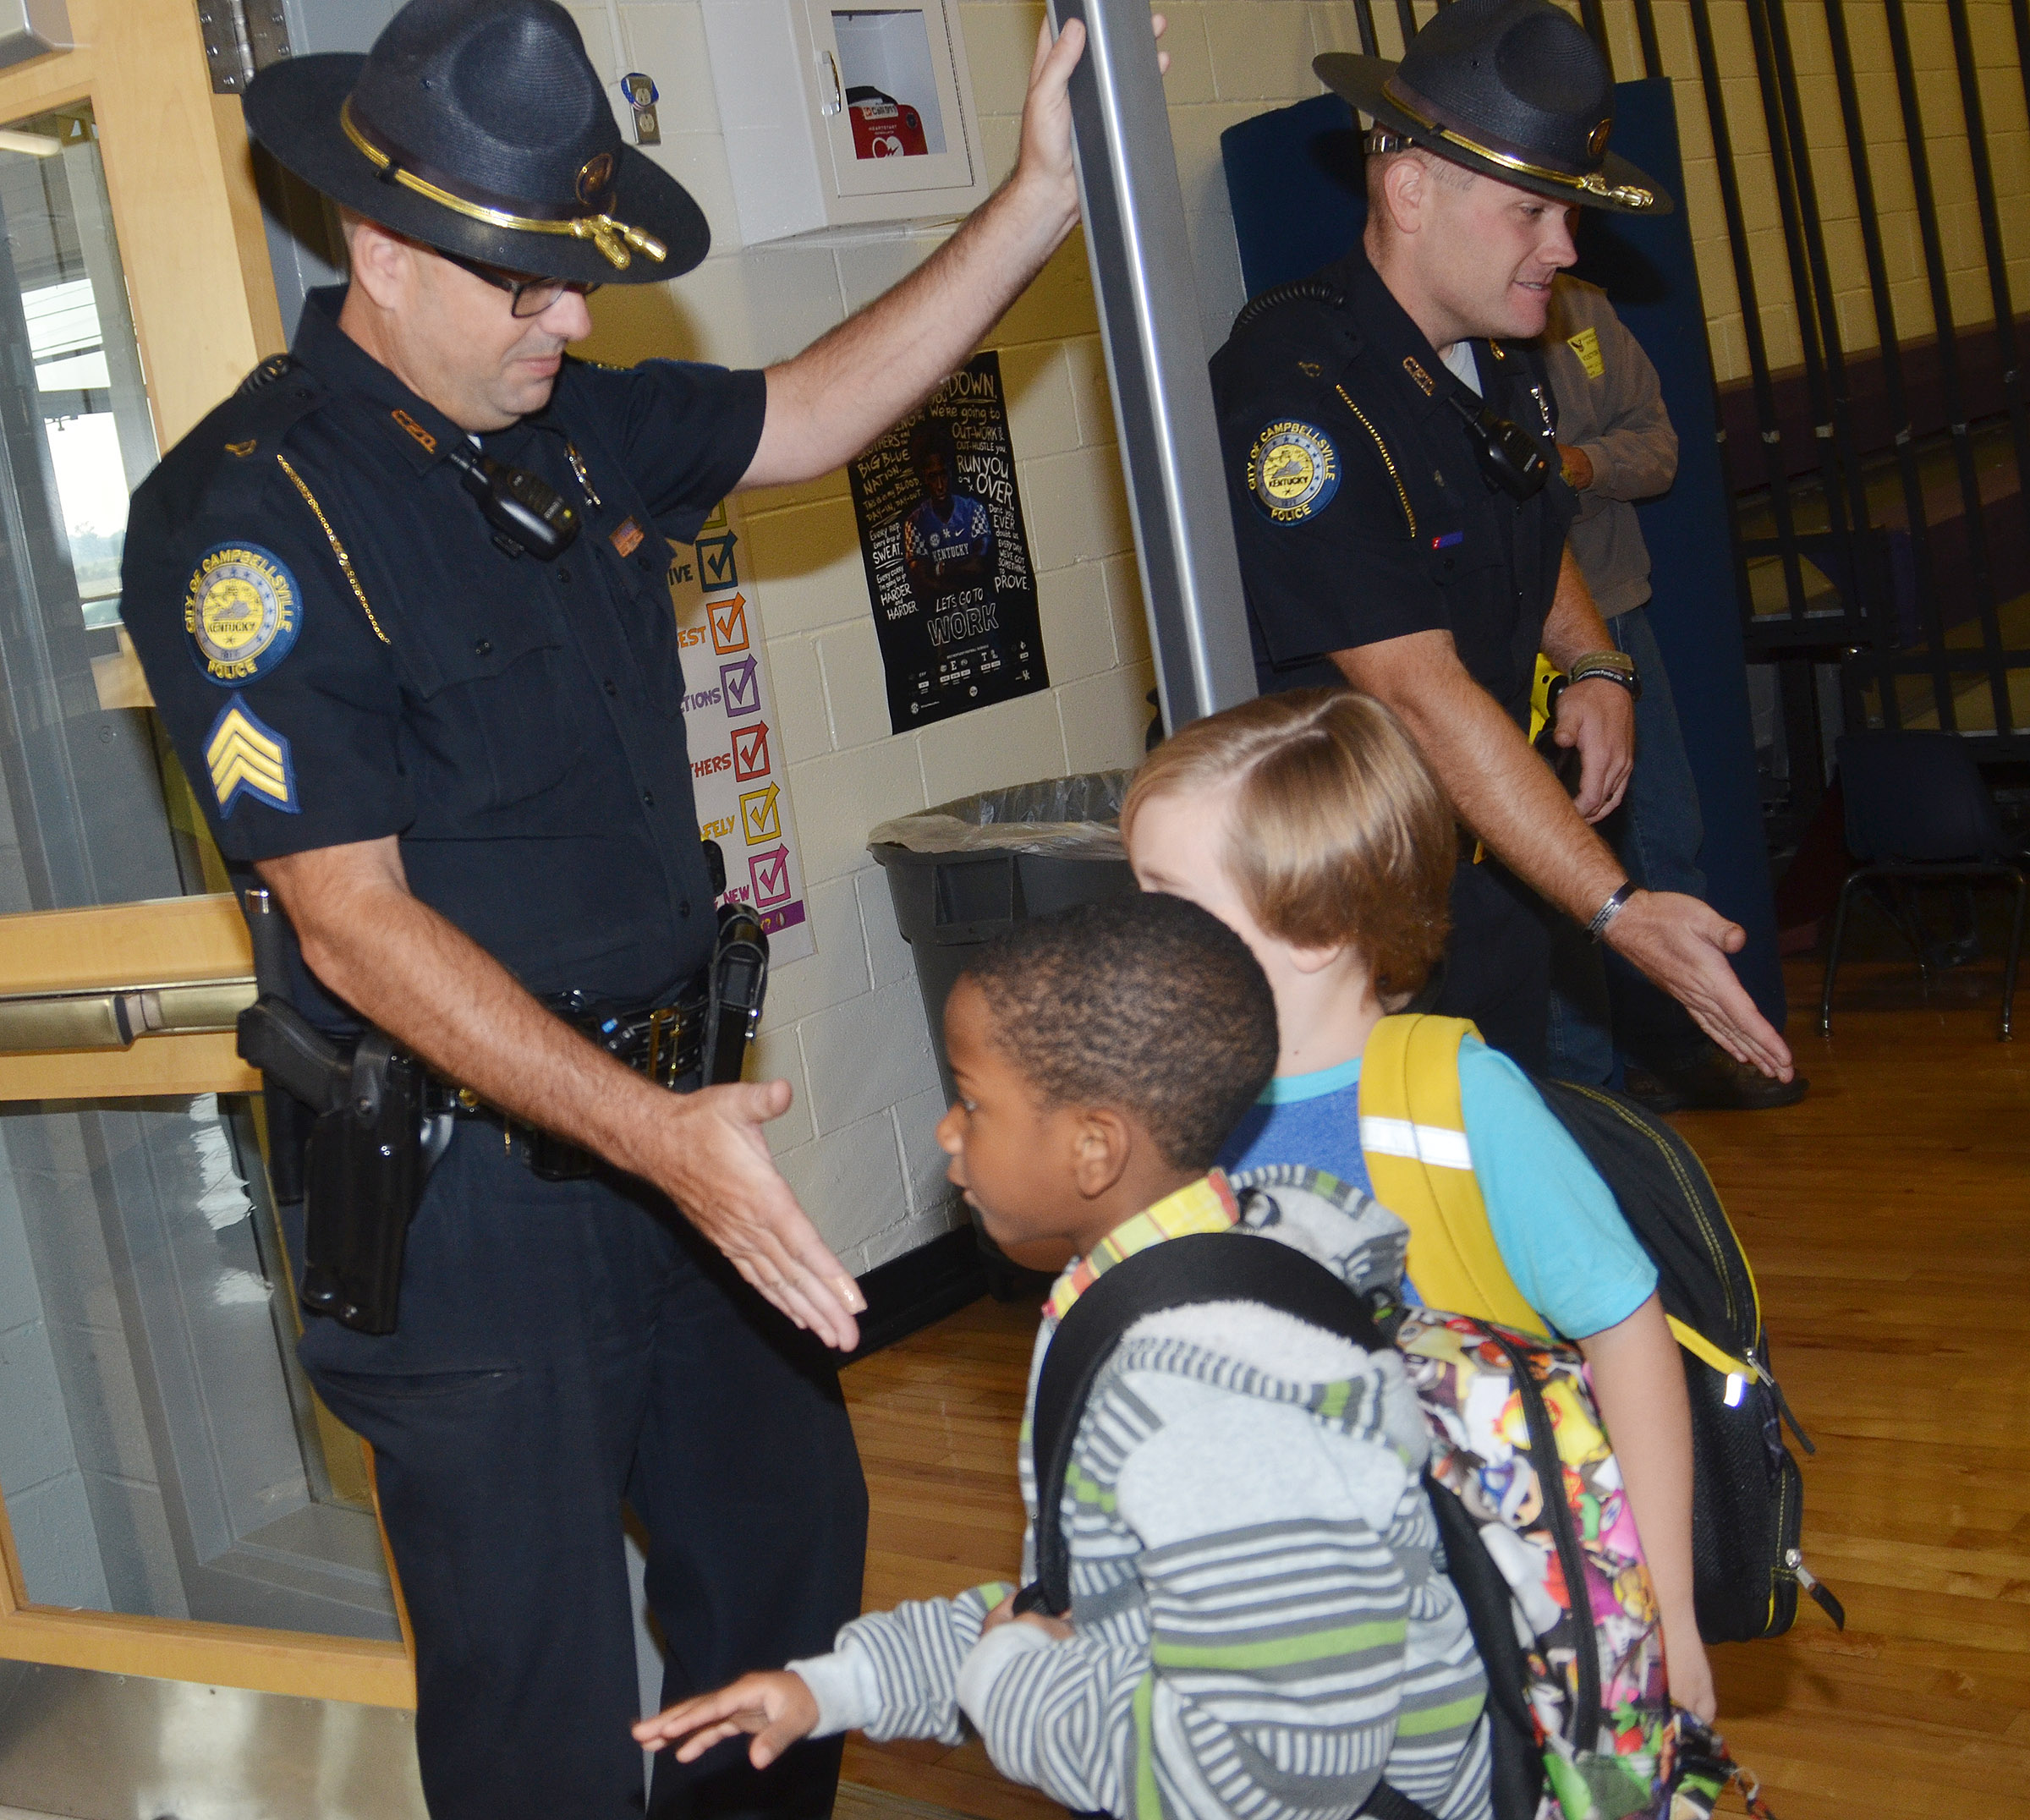 Campbellsville Police officers David Tucker, at left, and Jake Hedgespeth greet CES students as they walk to their classrooms.